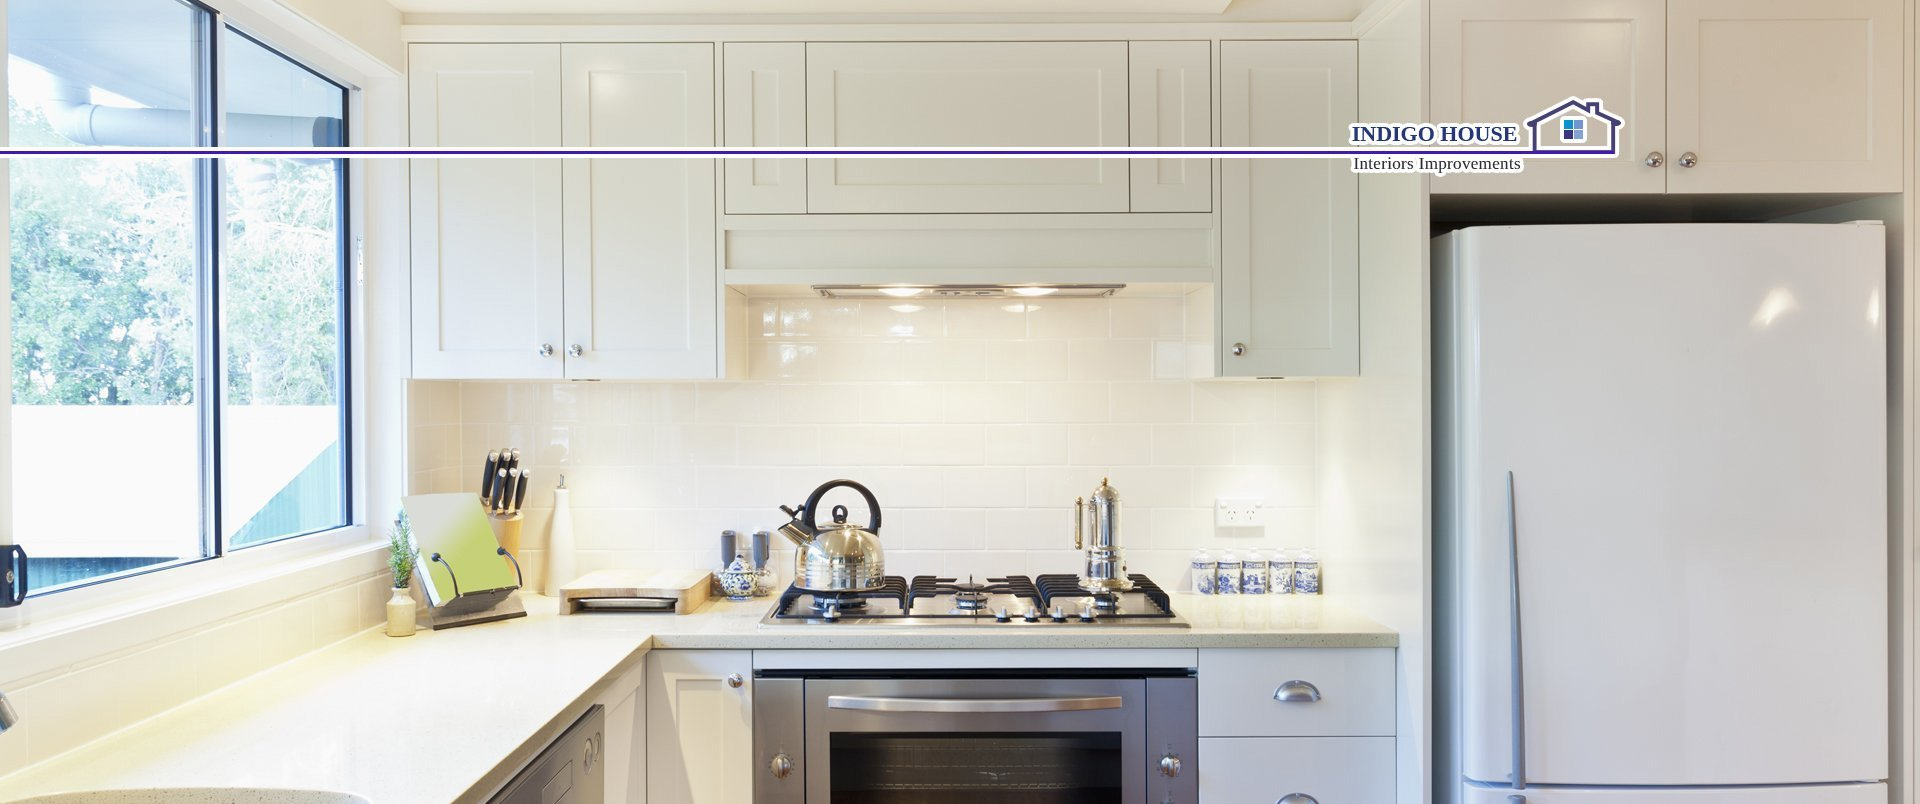 bespoke kitchen design services for customers in edinburgh